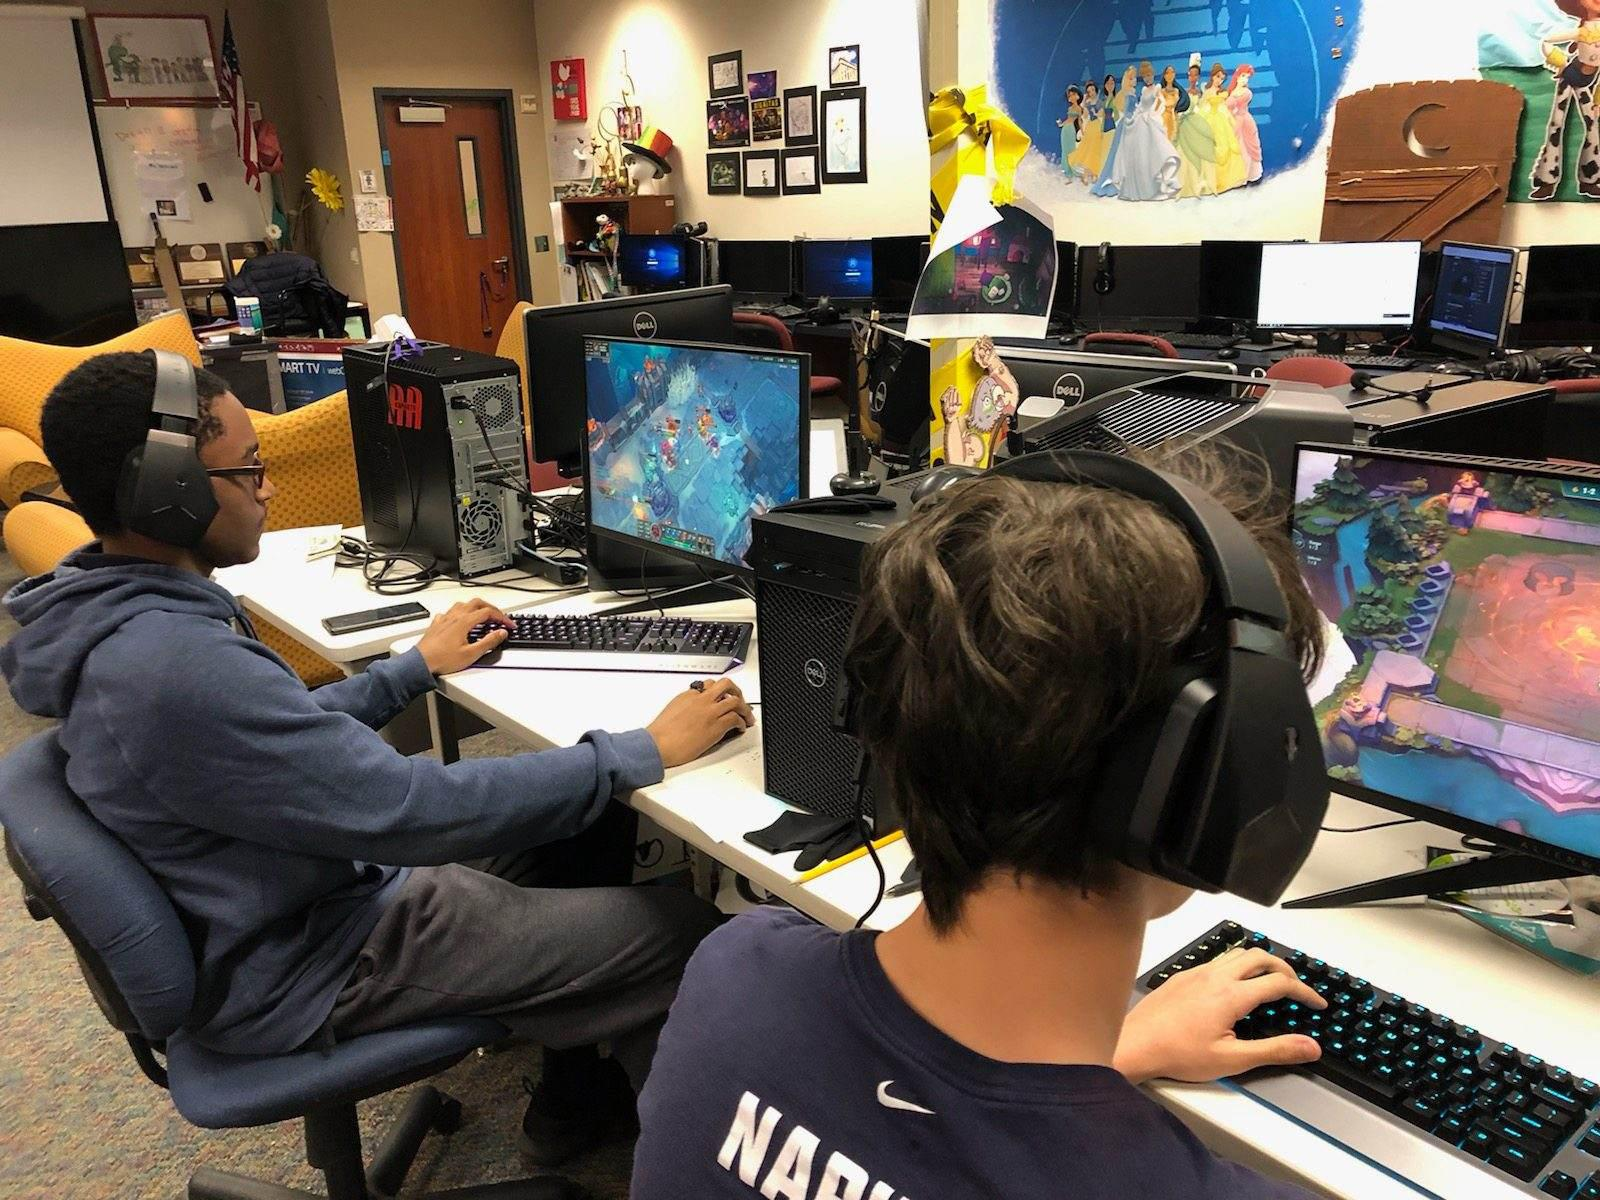 Humble ISD brings gaming to classroom with esports course